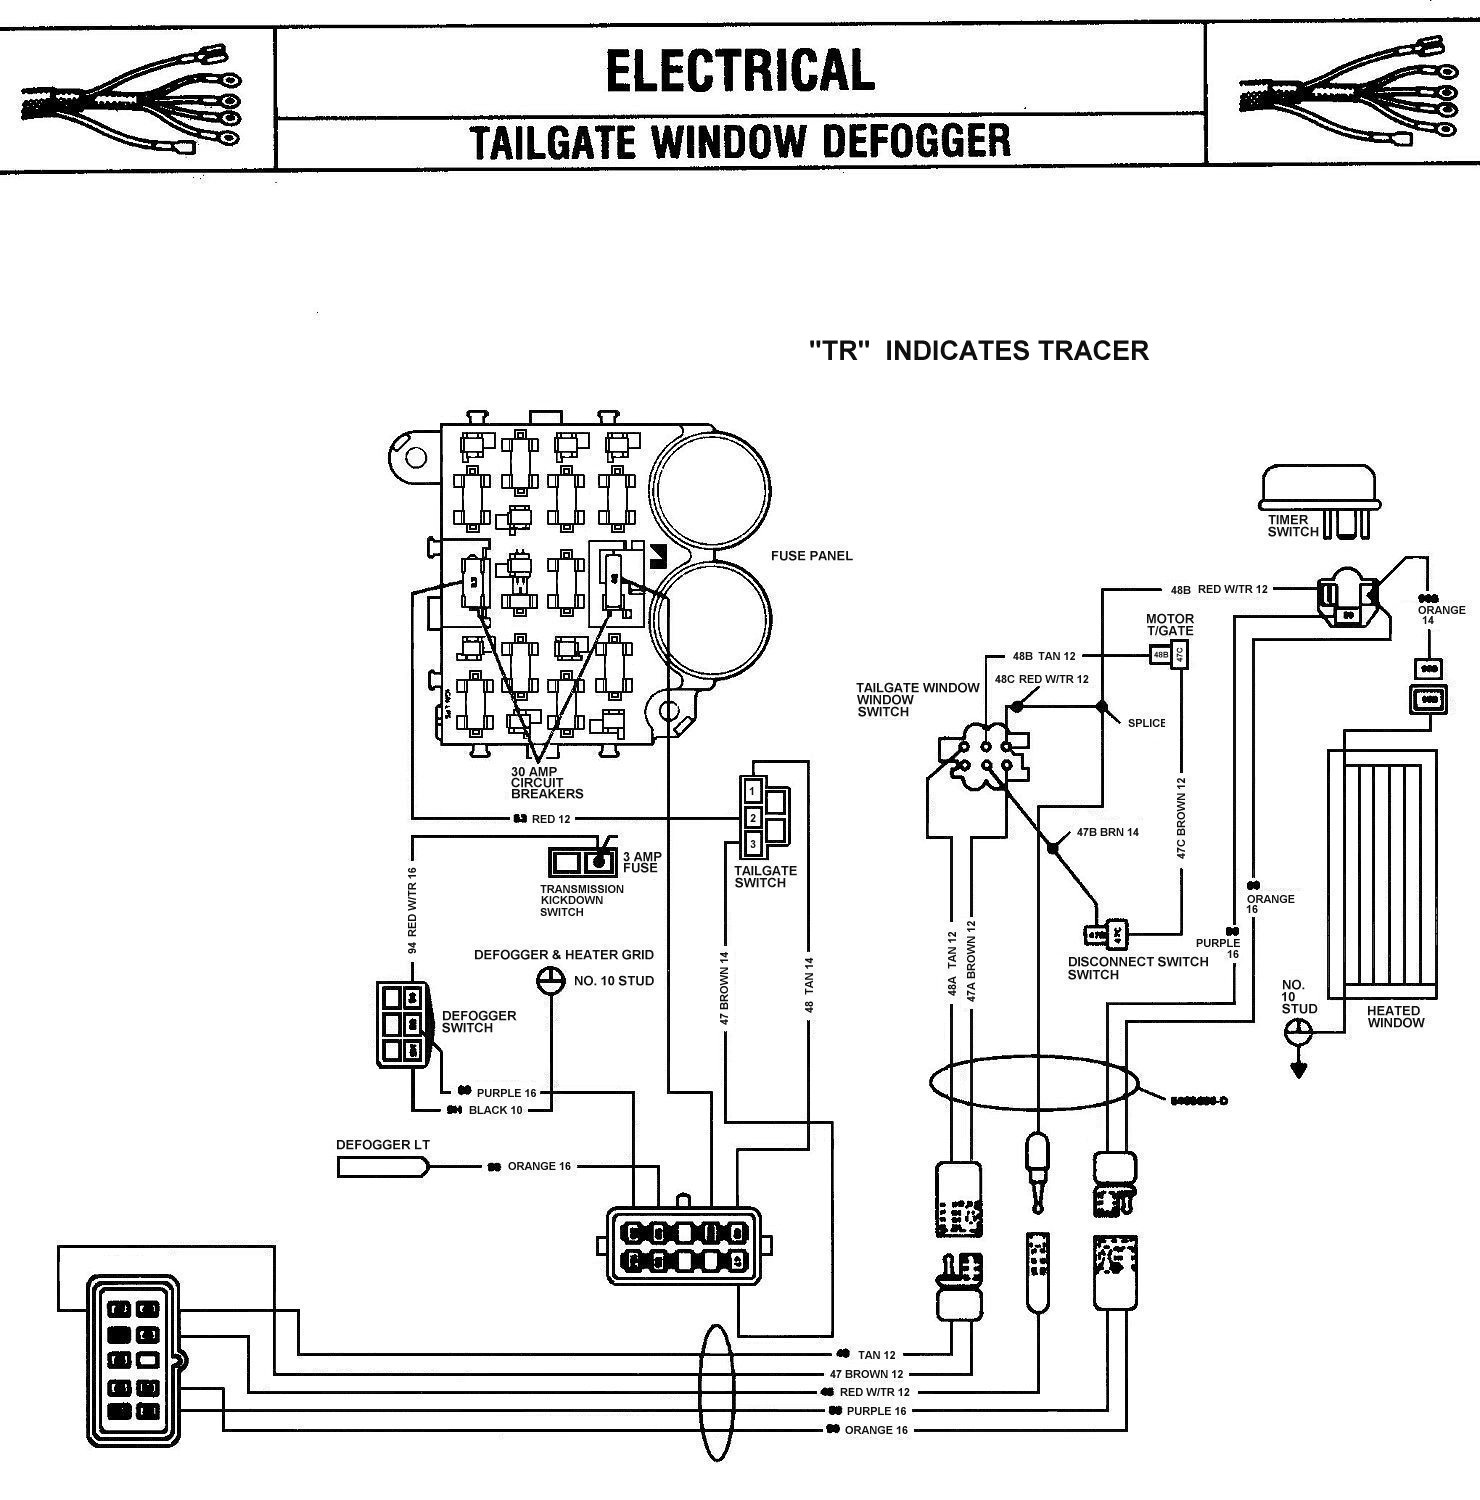 [WRG-2586] 1983 Cj7 Wiring Diagram Under Hood